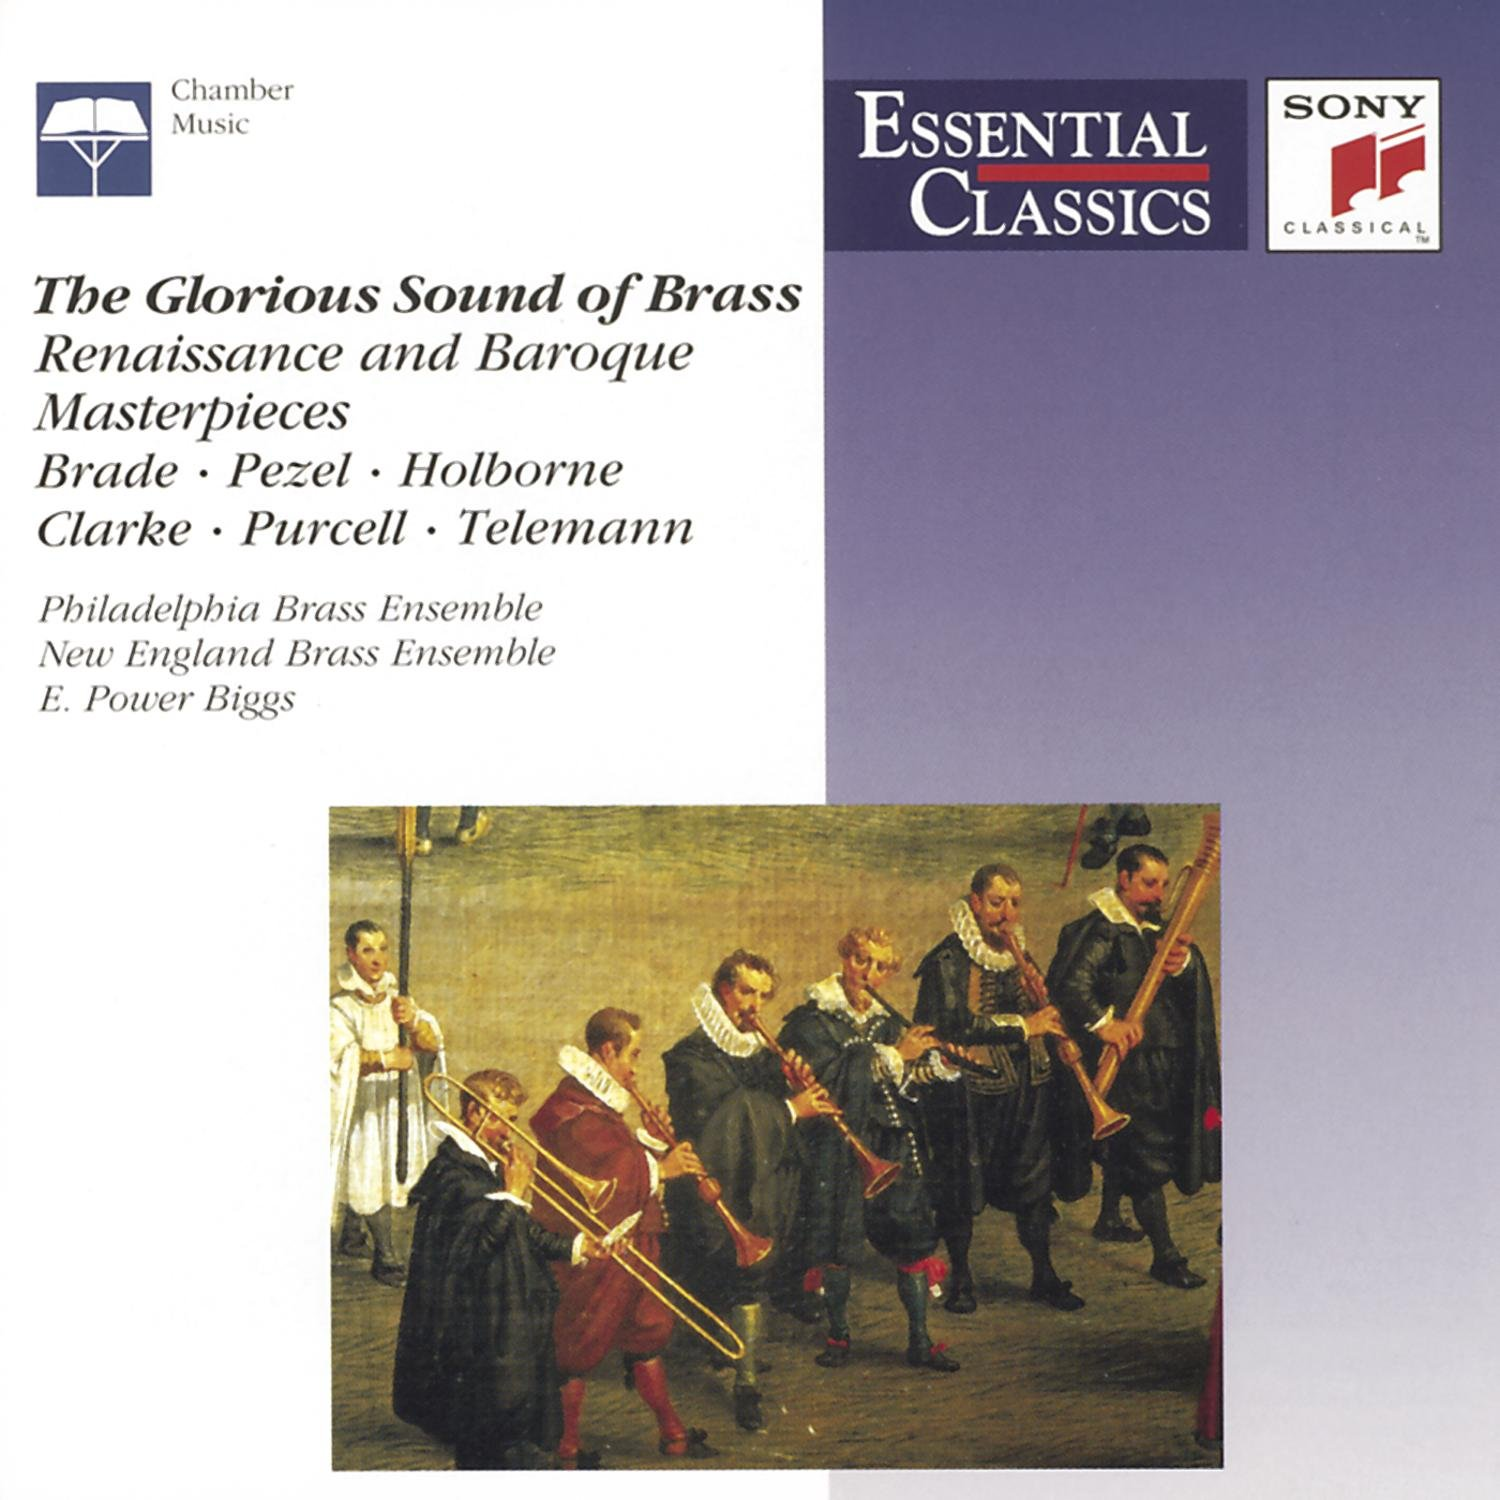 The Glorious Sound of Brass: Renaissance & Baroque Masterpieces